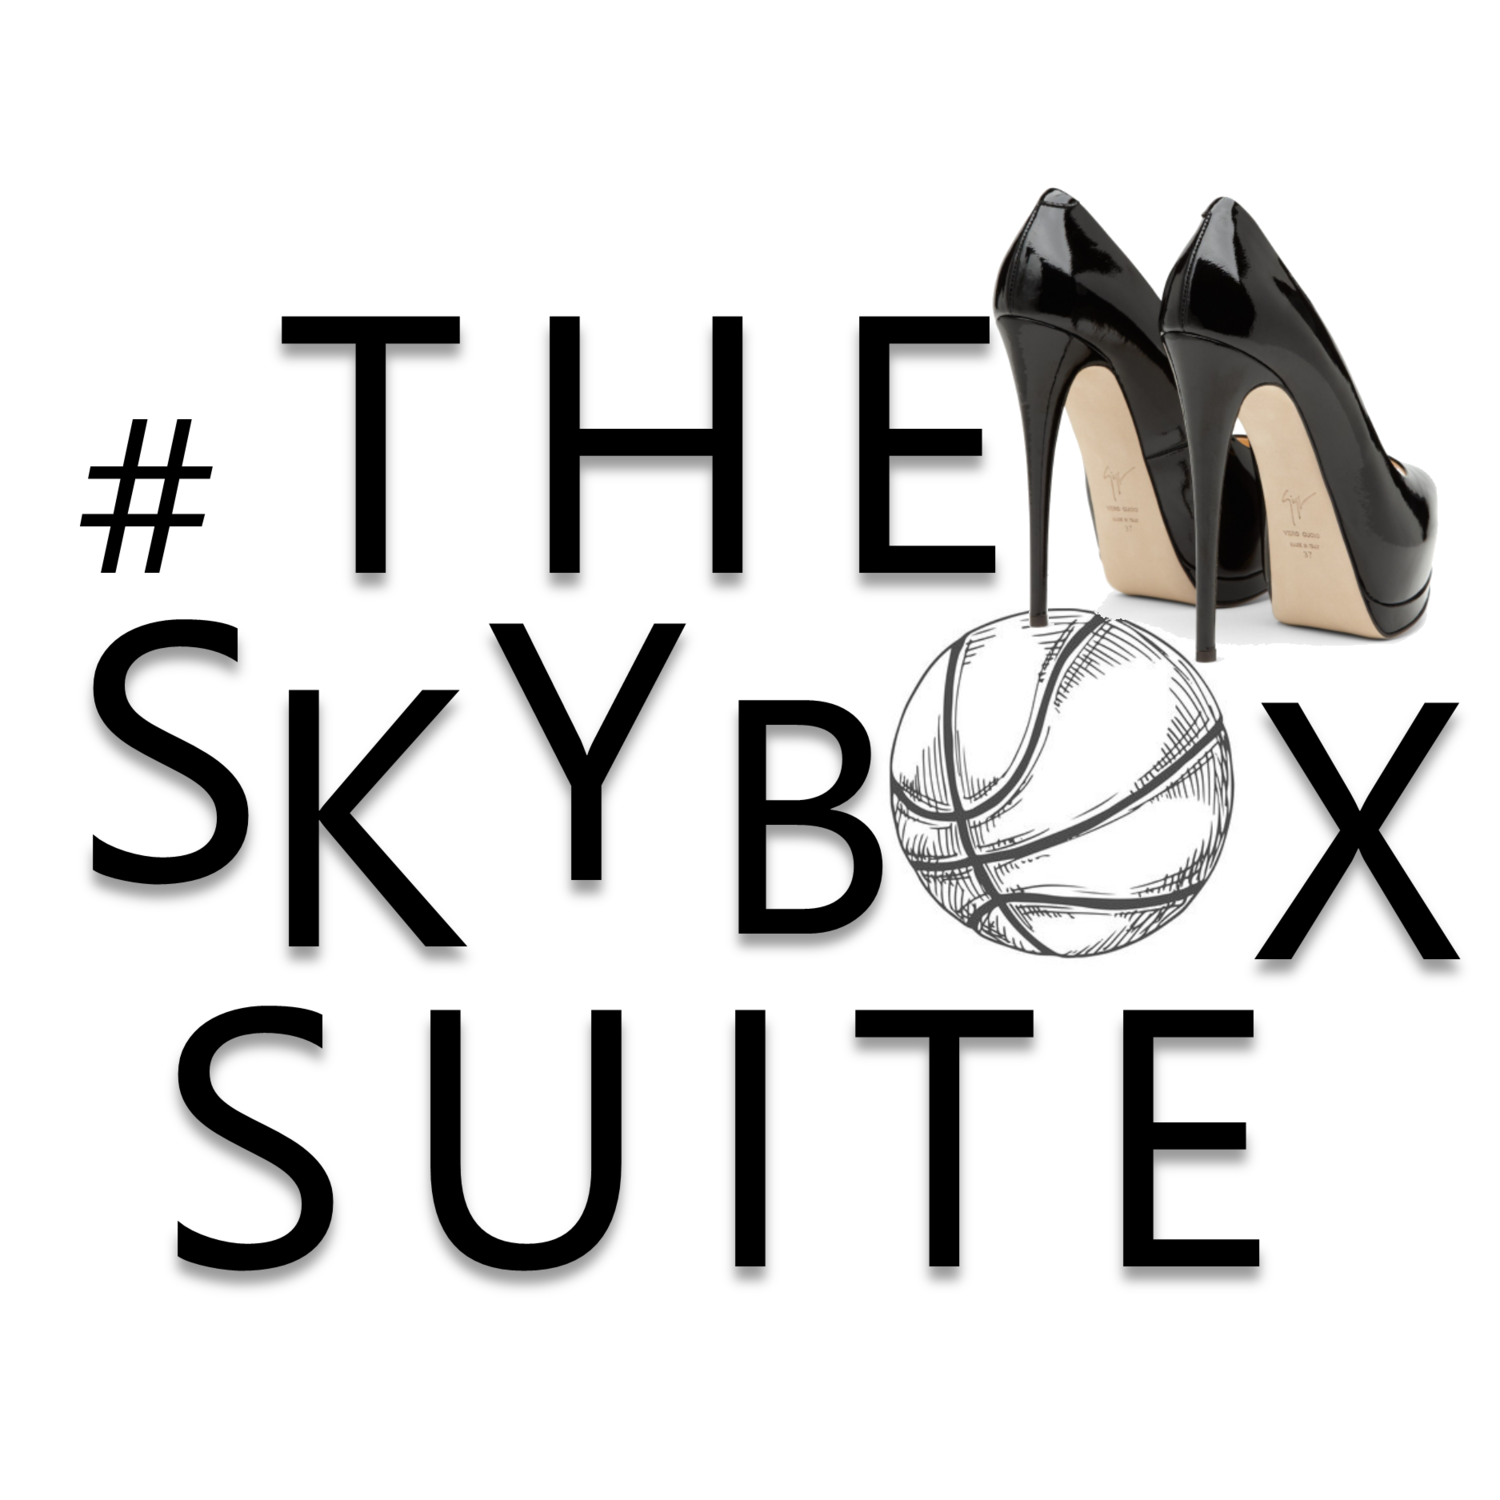 The Sky Box Suite